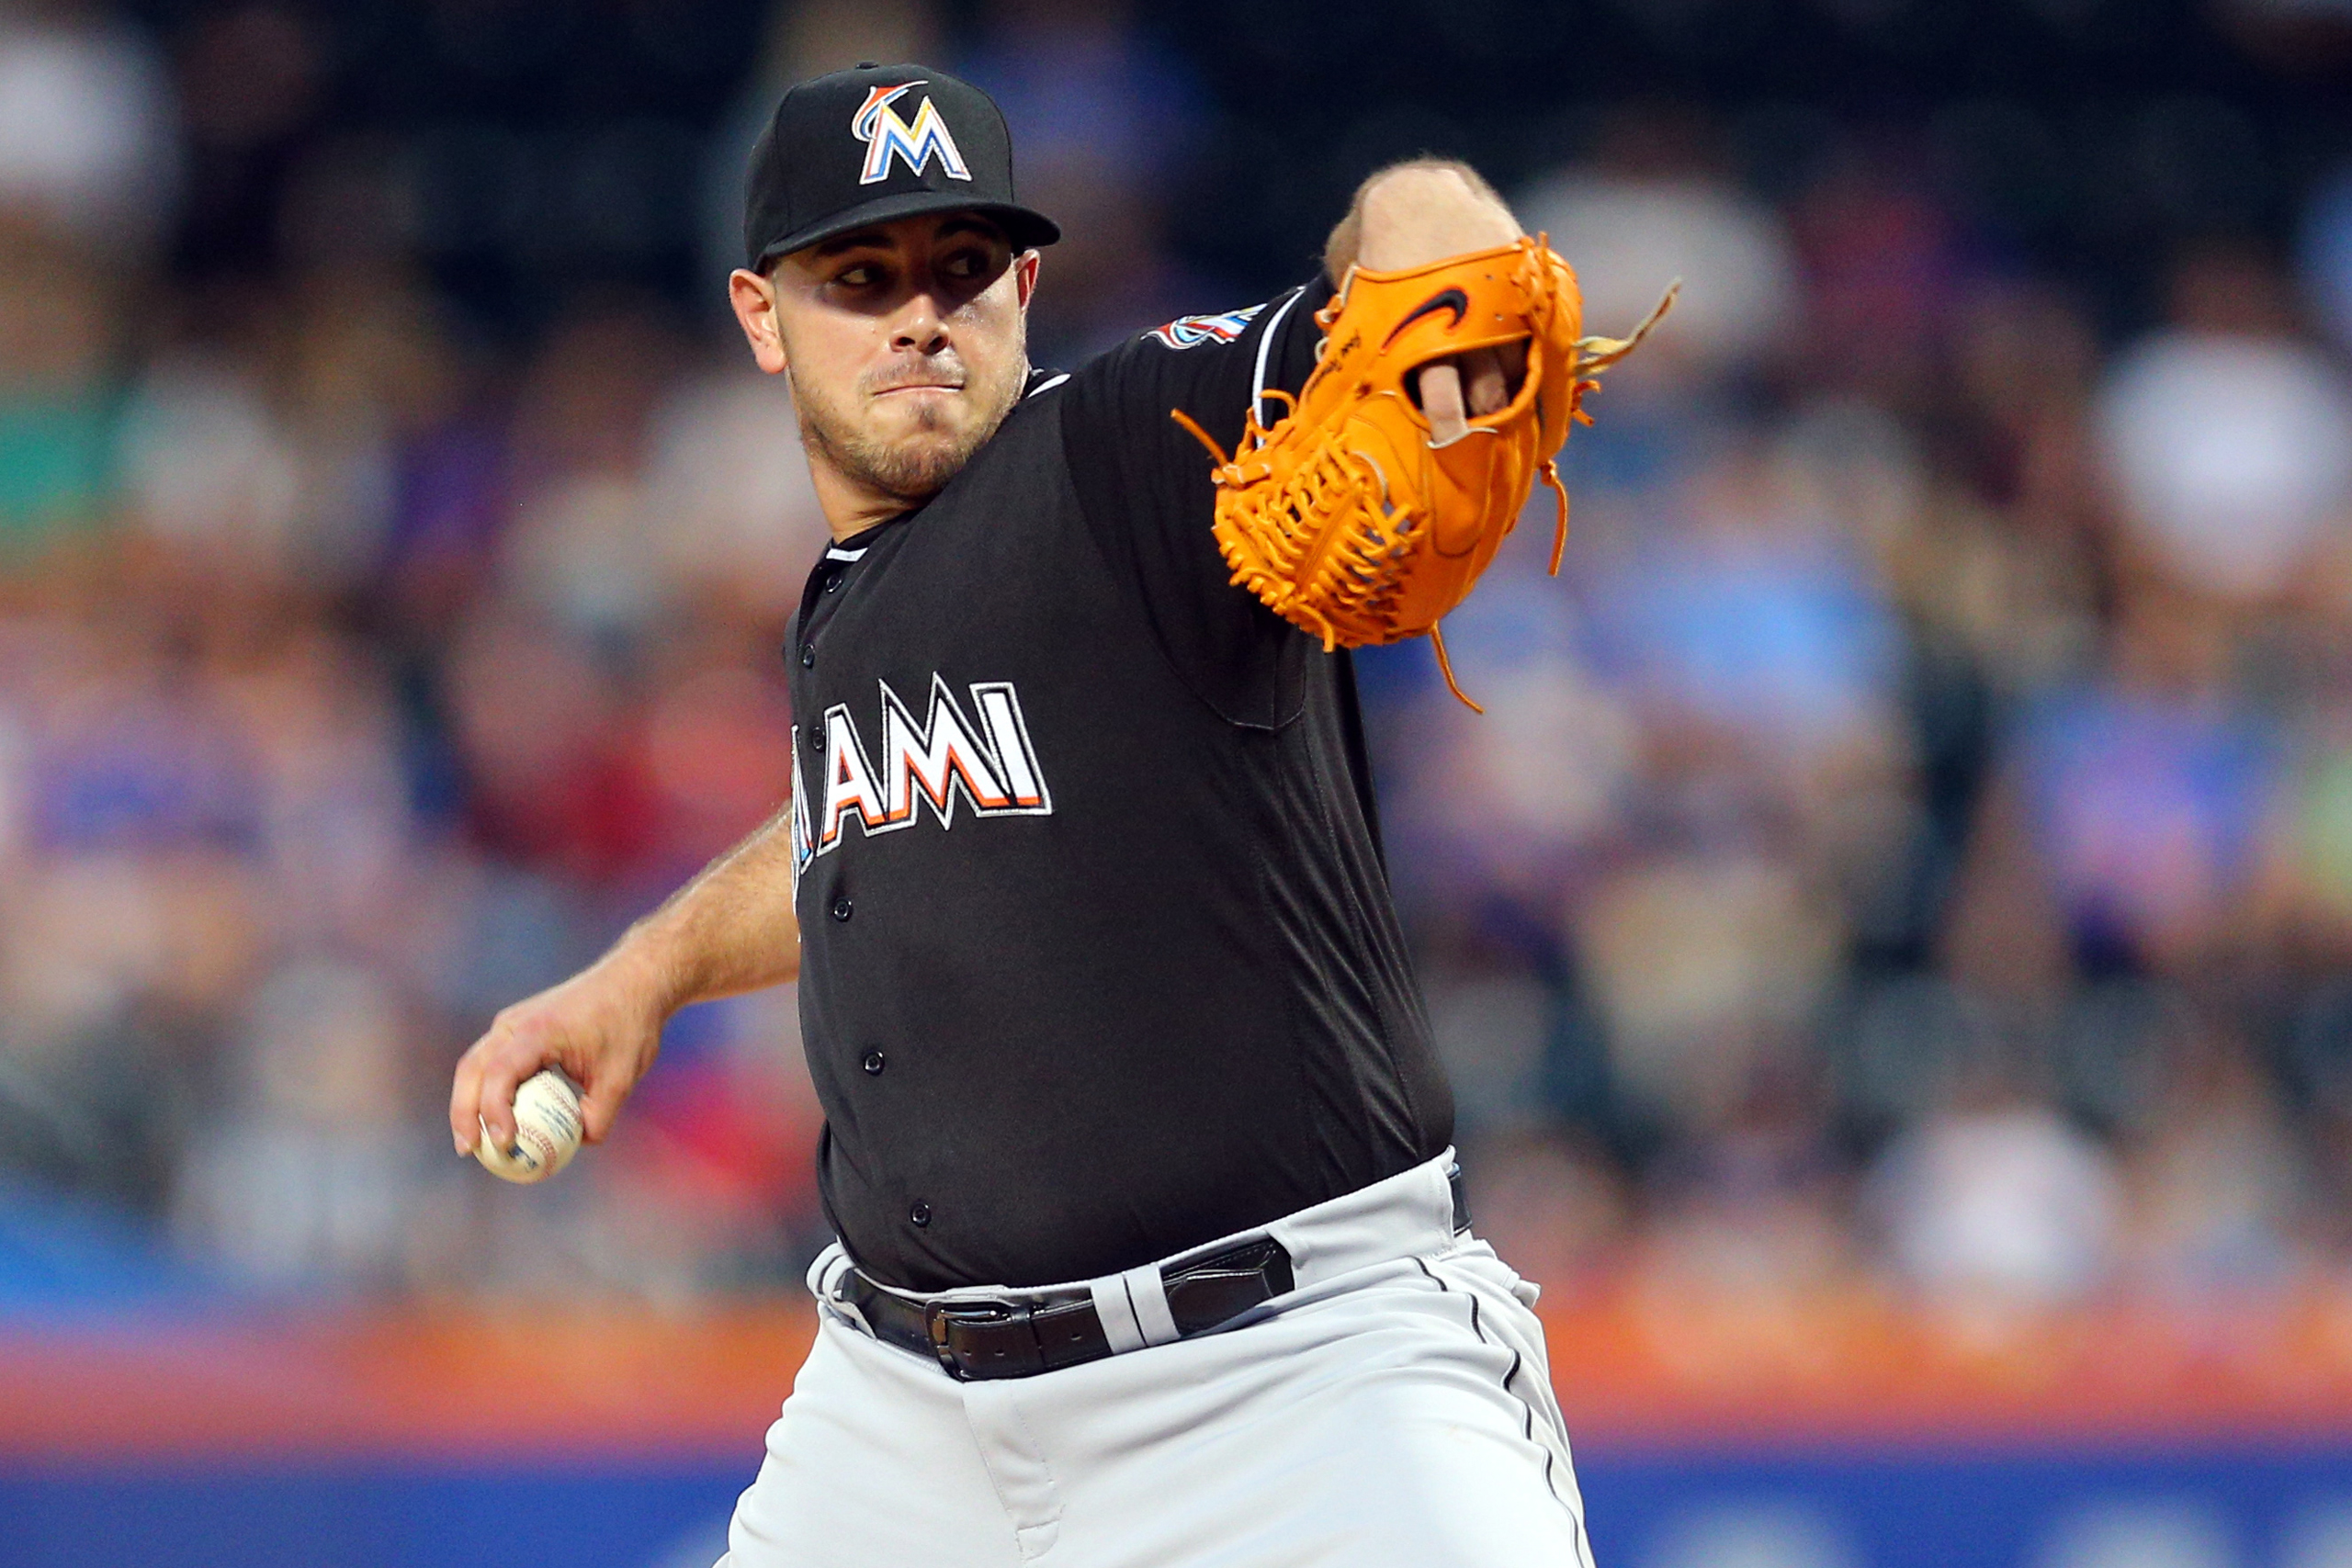 Miami Marlins starting pitcher Jose Fernandez pitches against the New York Mets during the first inning at Citi Field on Aug 29, 2016.